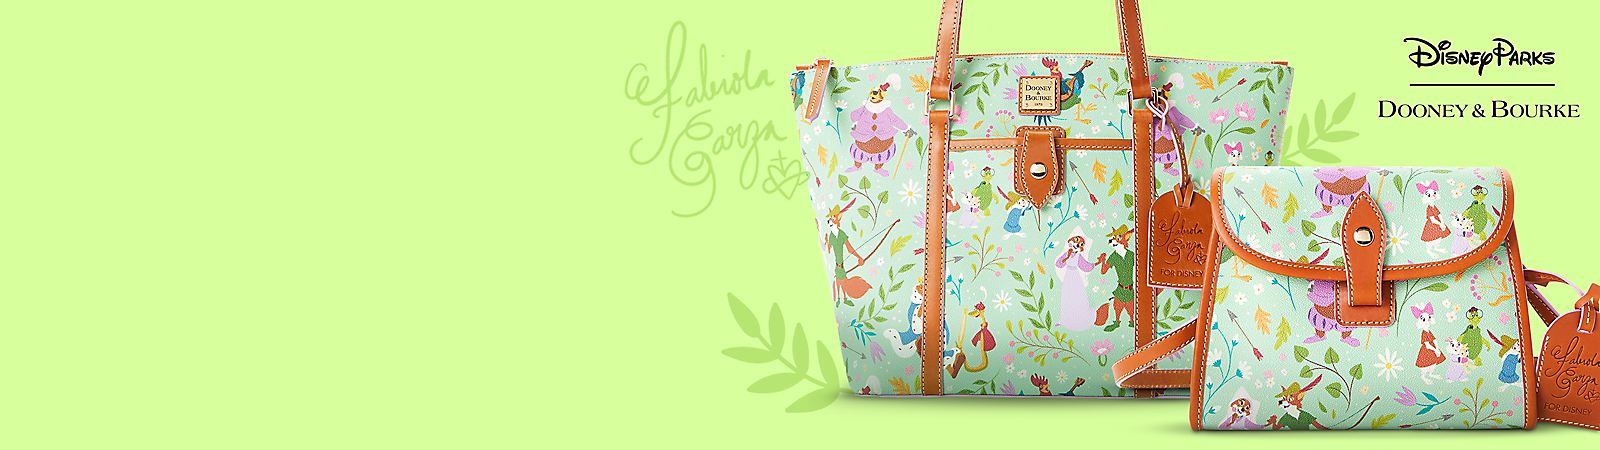 Background image of Take Aim at New Dooney & Bourke